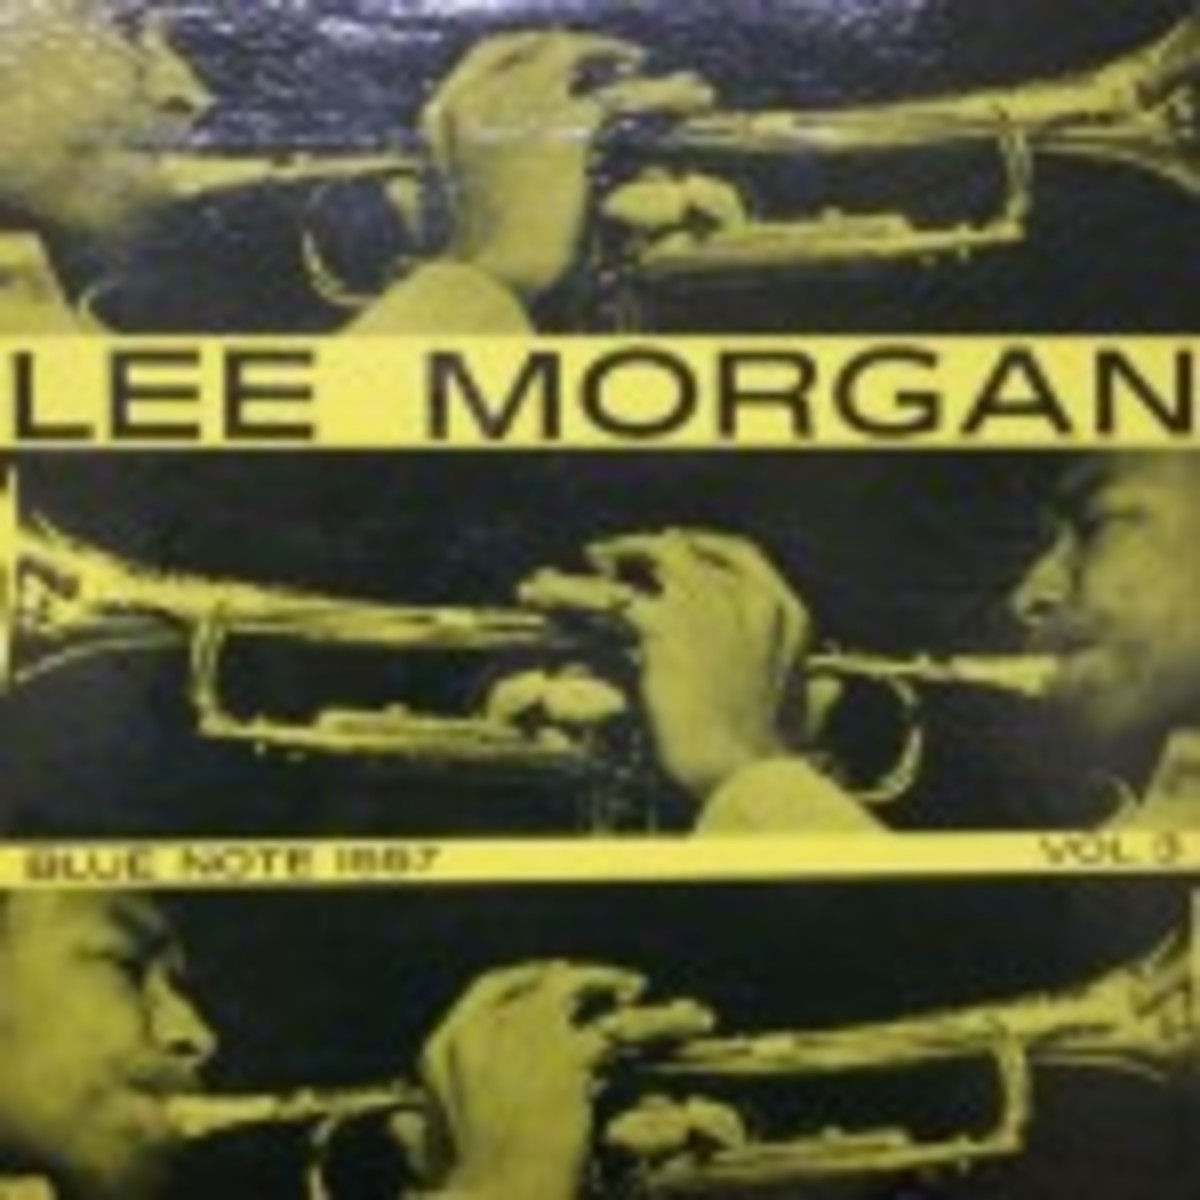 Lee Morgan eponymous album